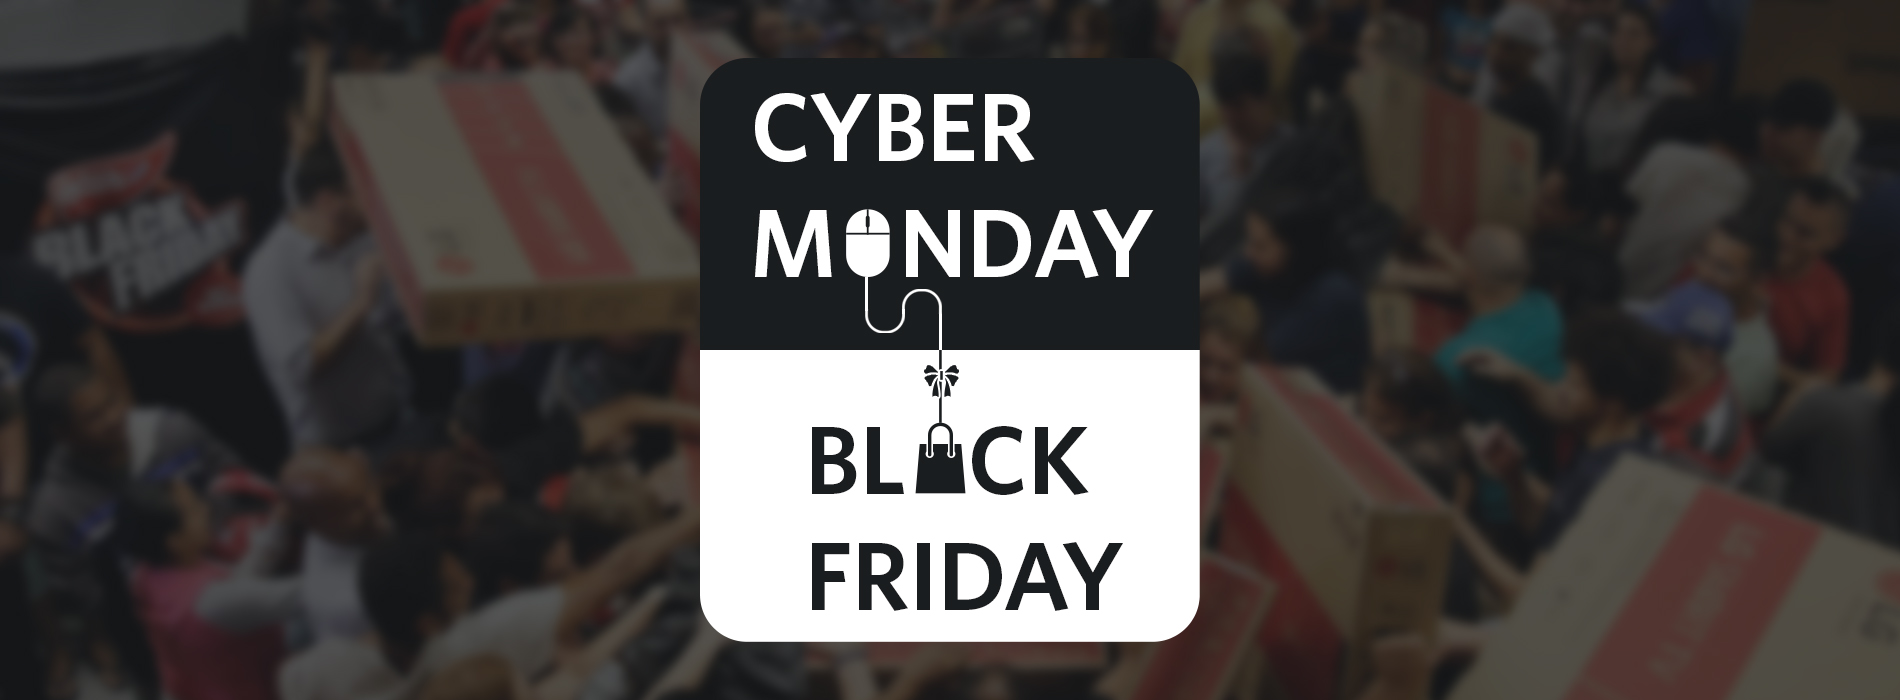 What Are The Benefits of Black Friday?